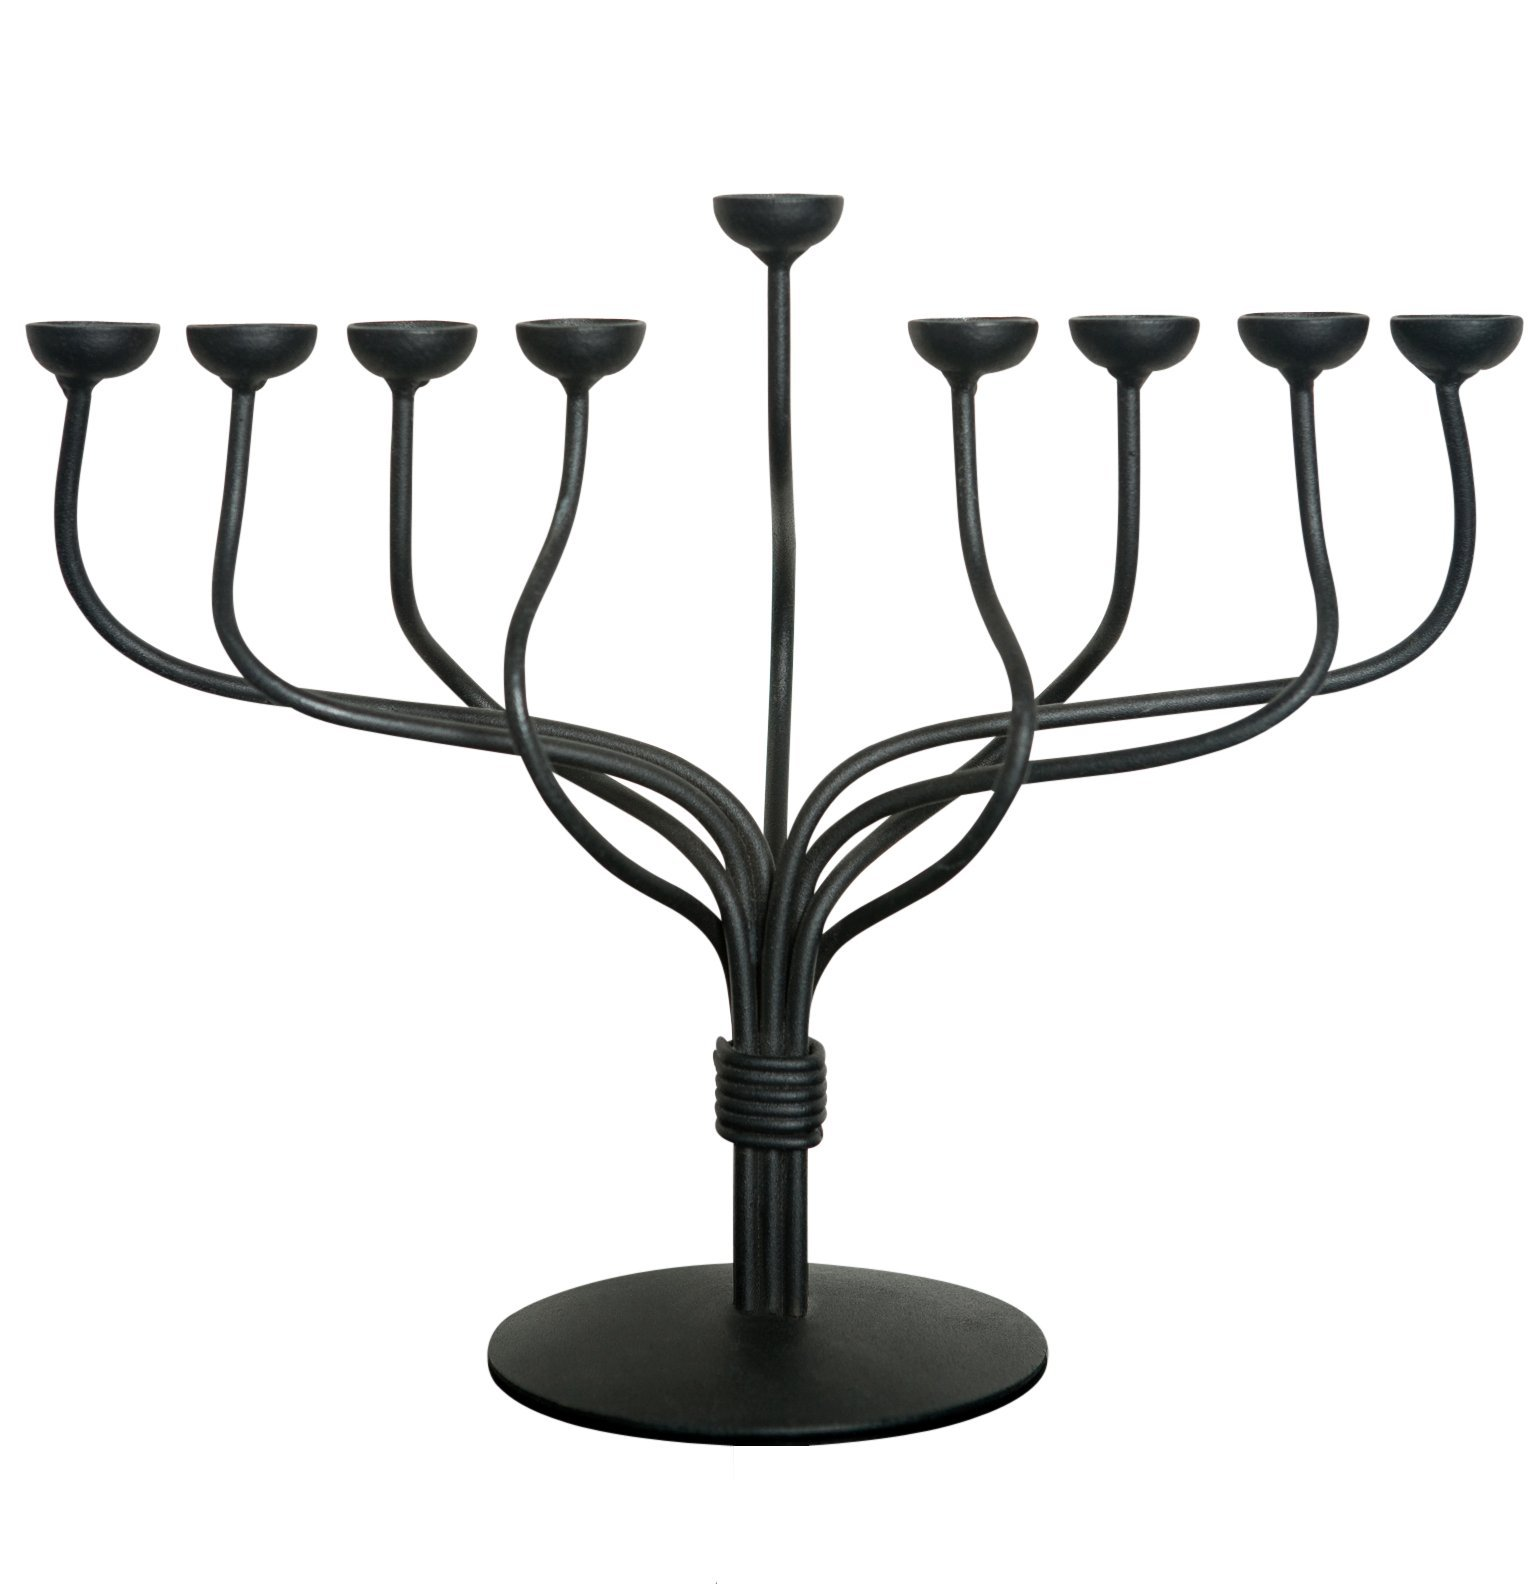 RTZEN Judaica - Hanukkah Menorah, Handmade, 9 Iron Branches, Décor Made In Israel By